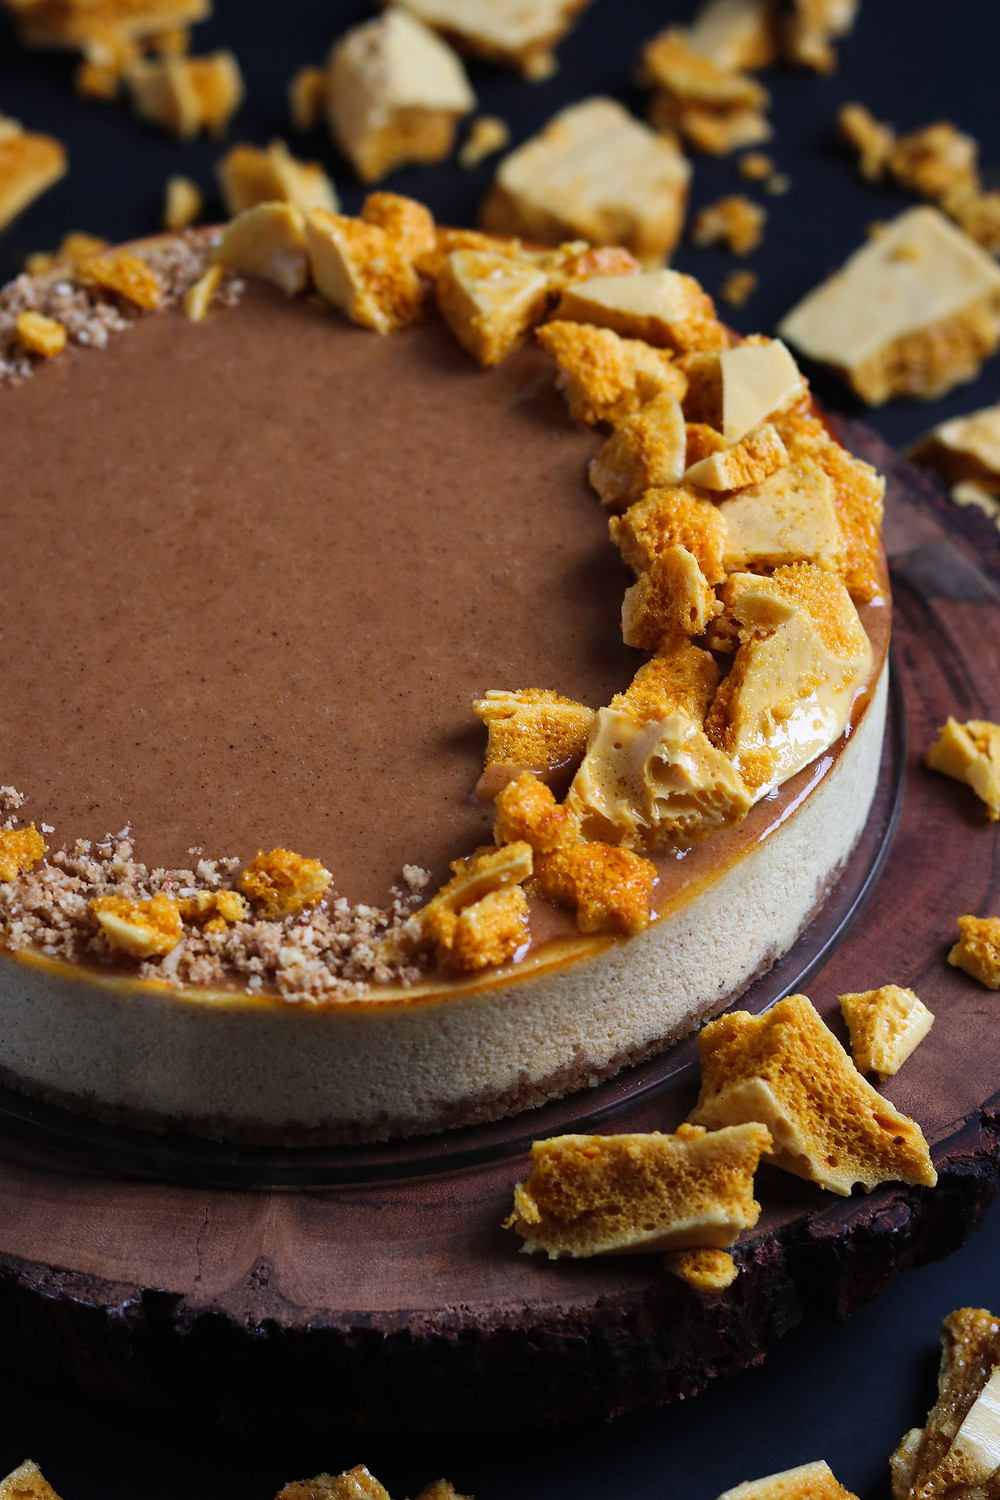 Honey Almond Ricotta Cheesecake with Honeycomb, Honey Almond Butter Glaze, and Toasted Almond Graham Cracker Crust